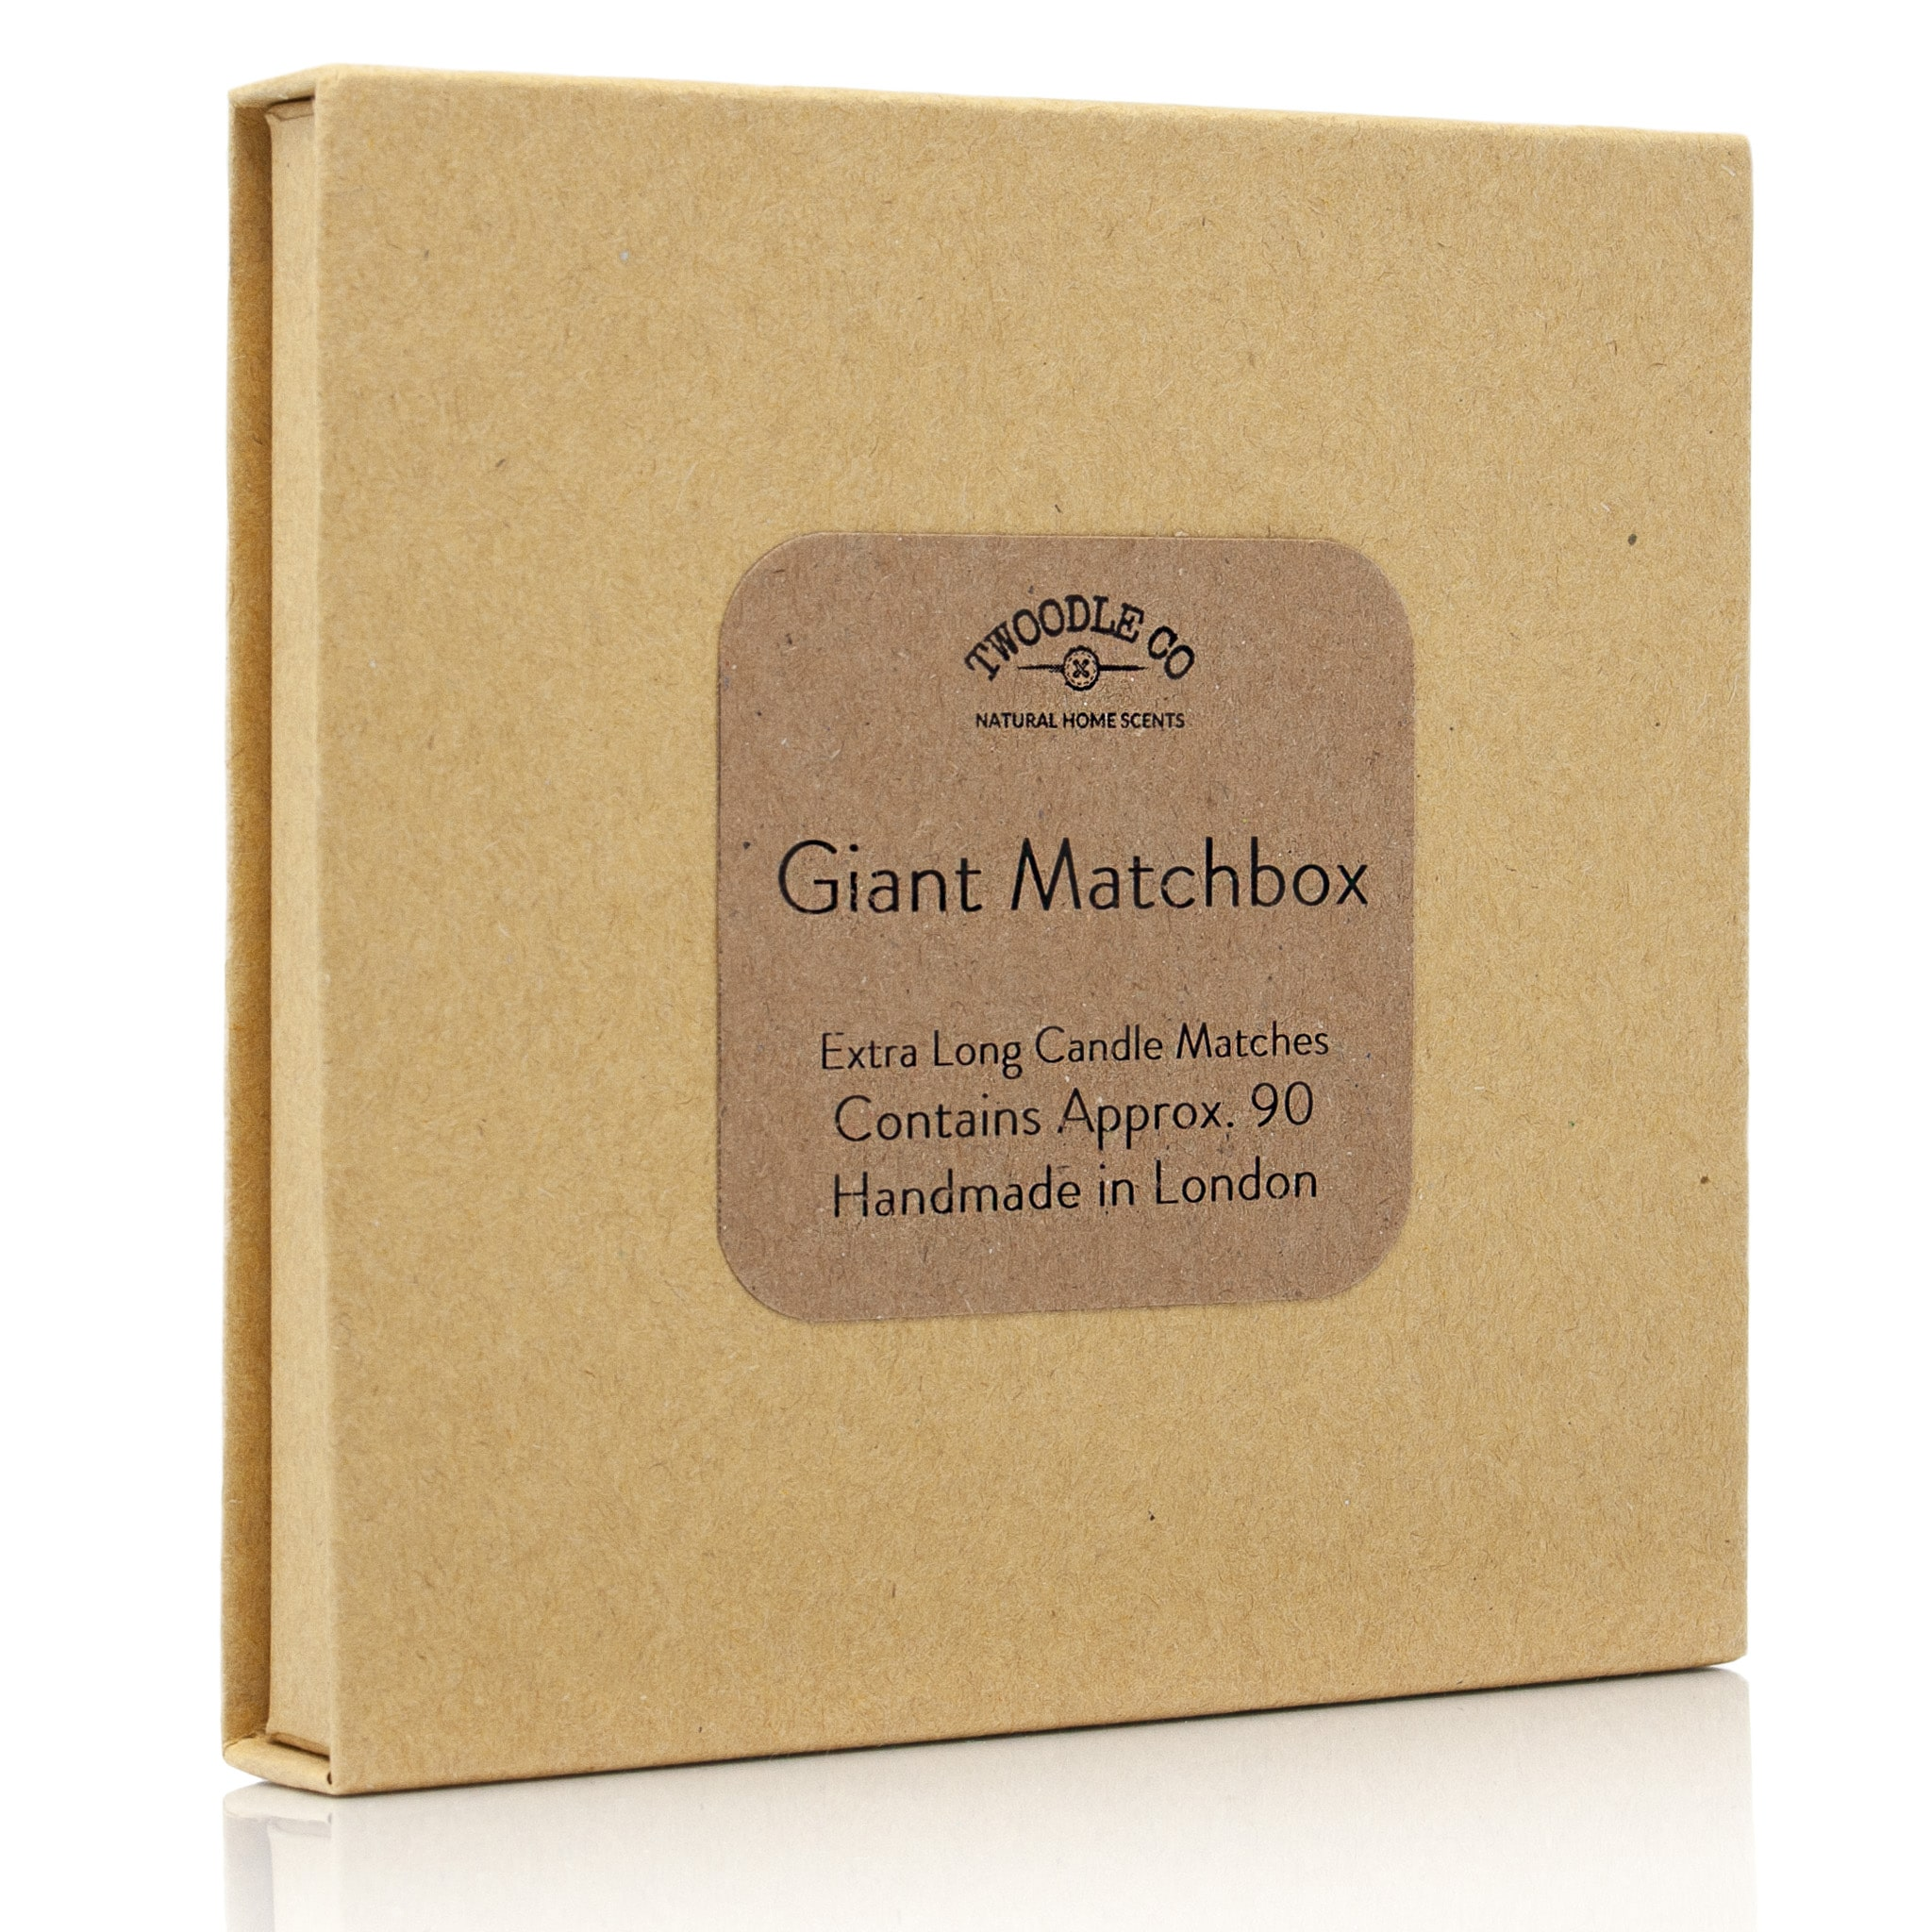 Giant match box extra long candle matches by Twoodle Co Natural Home Scents 11